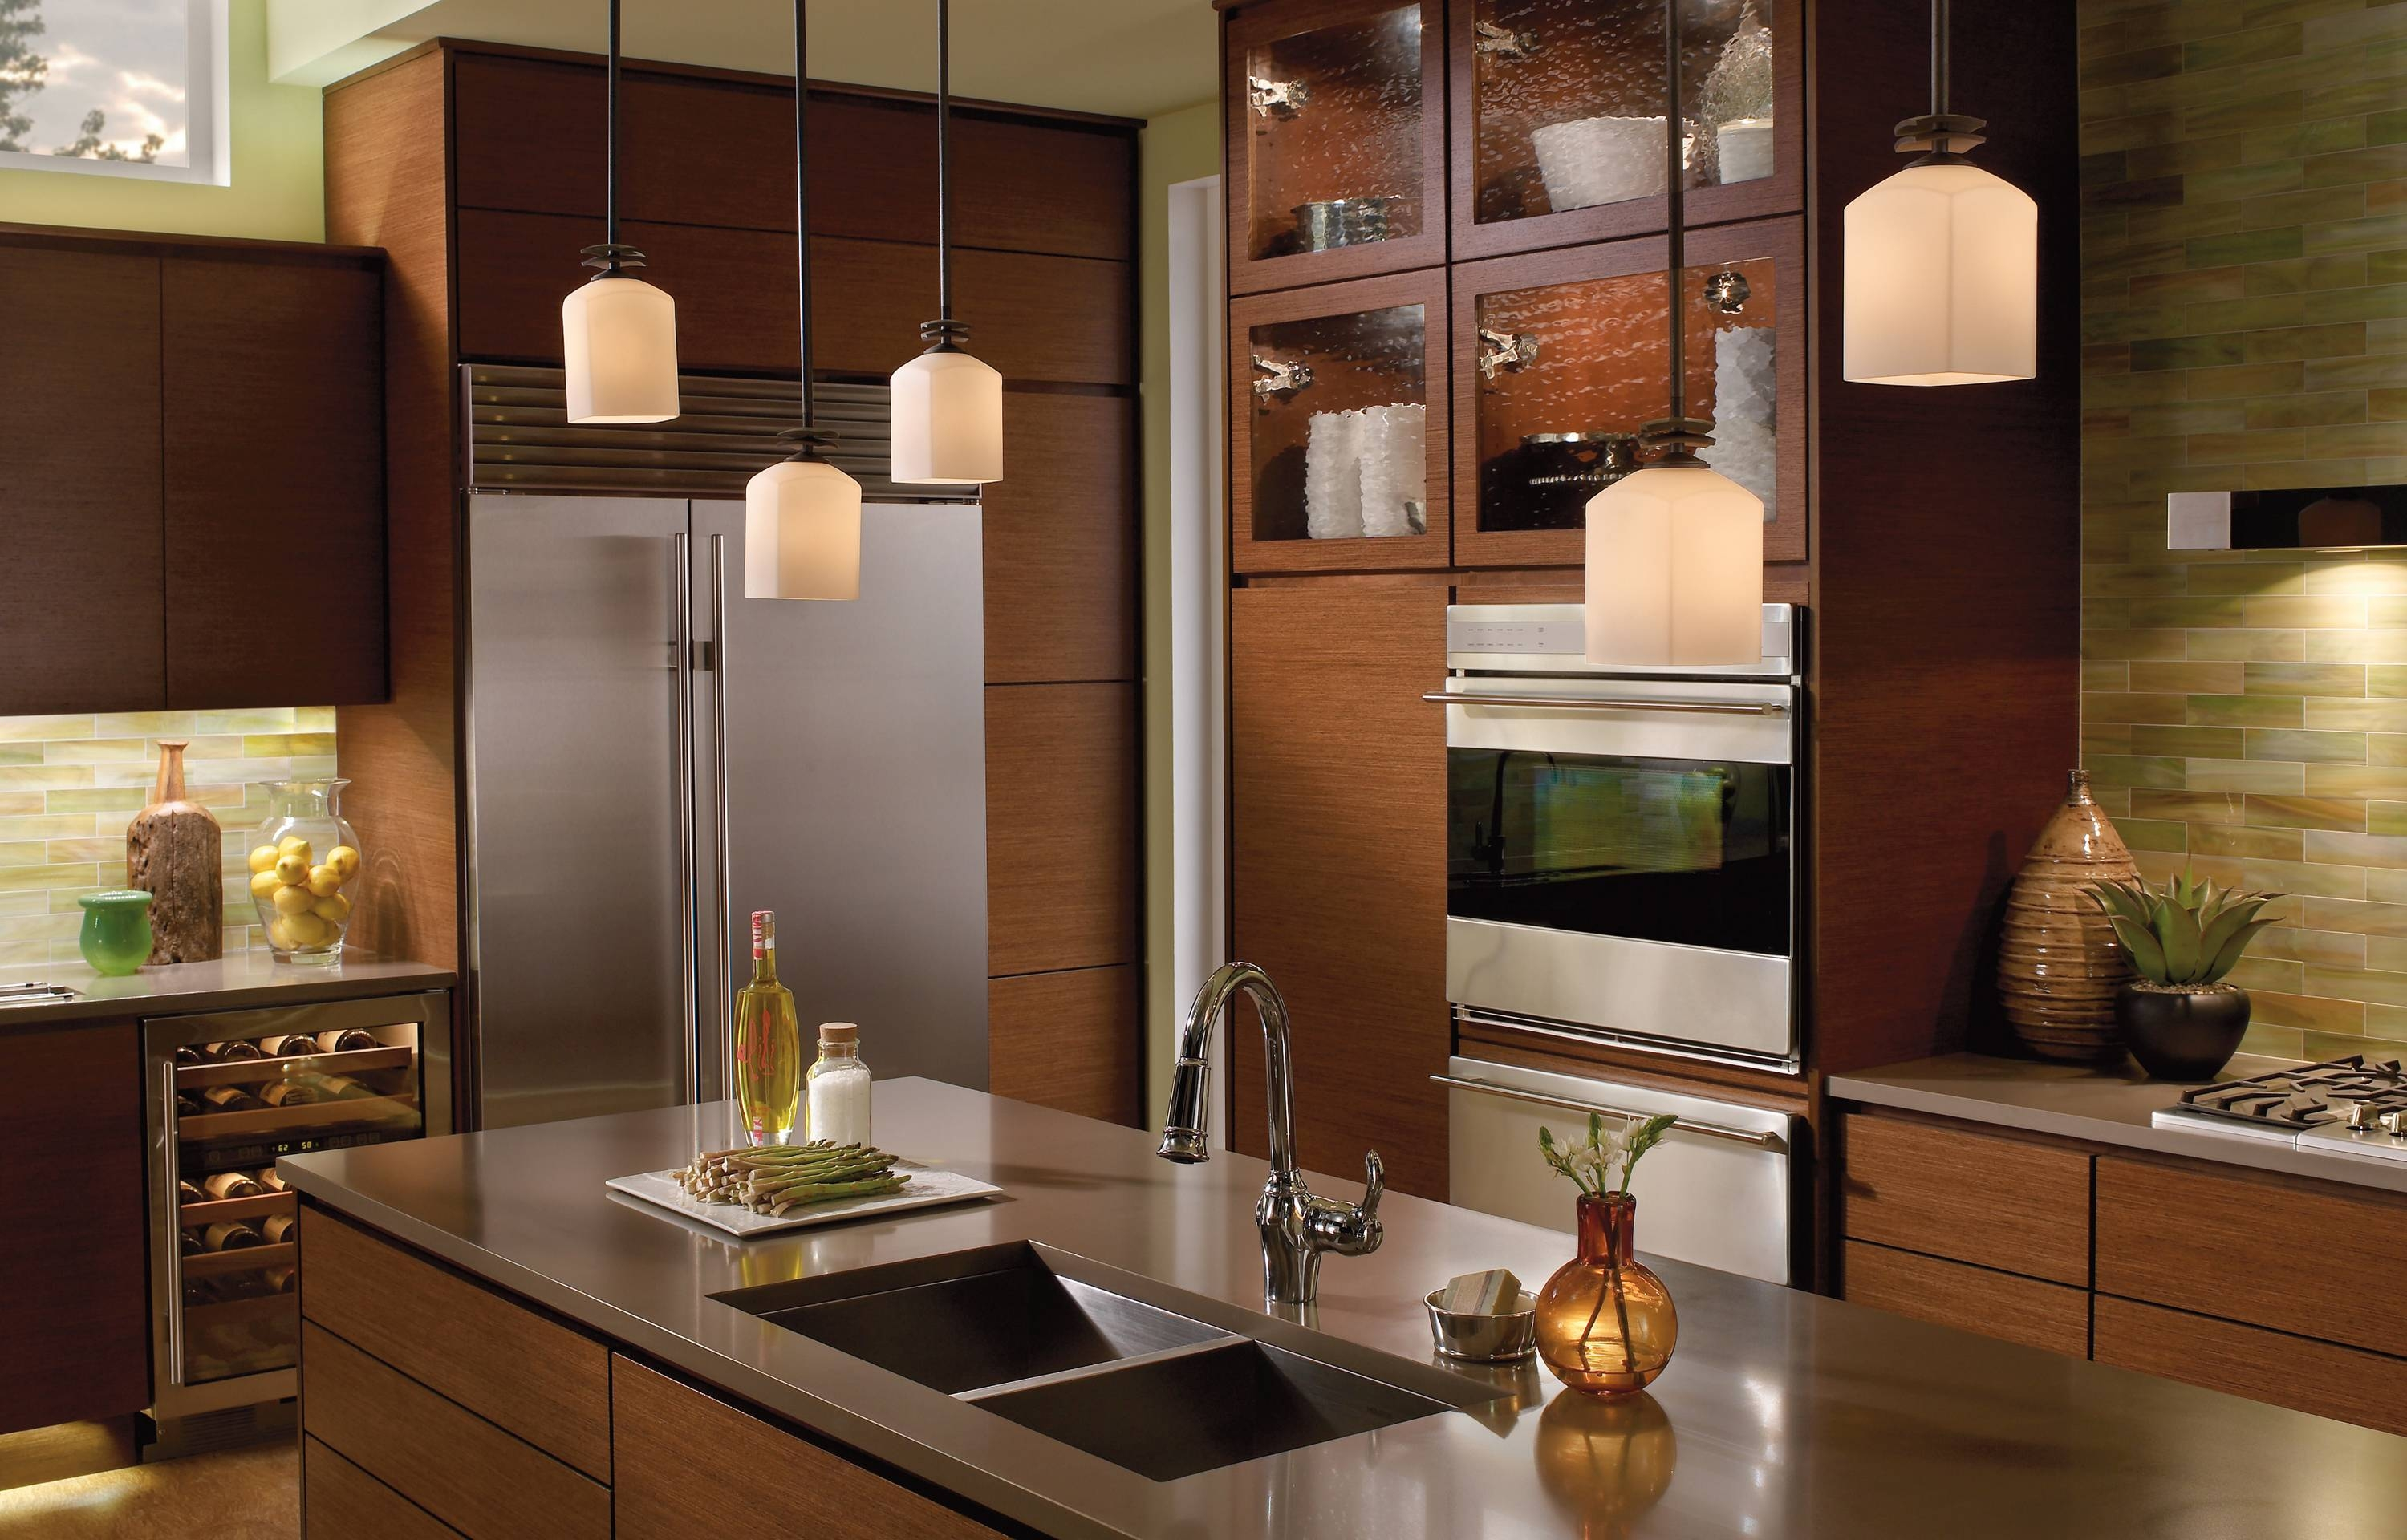 Kitchen : Cute Restaurant Pendant Lighting 909 Within Modern pertaining to Orange Pendant Lights For Kitchen (Image 3 of 15)